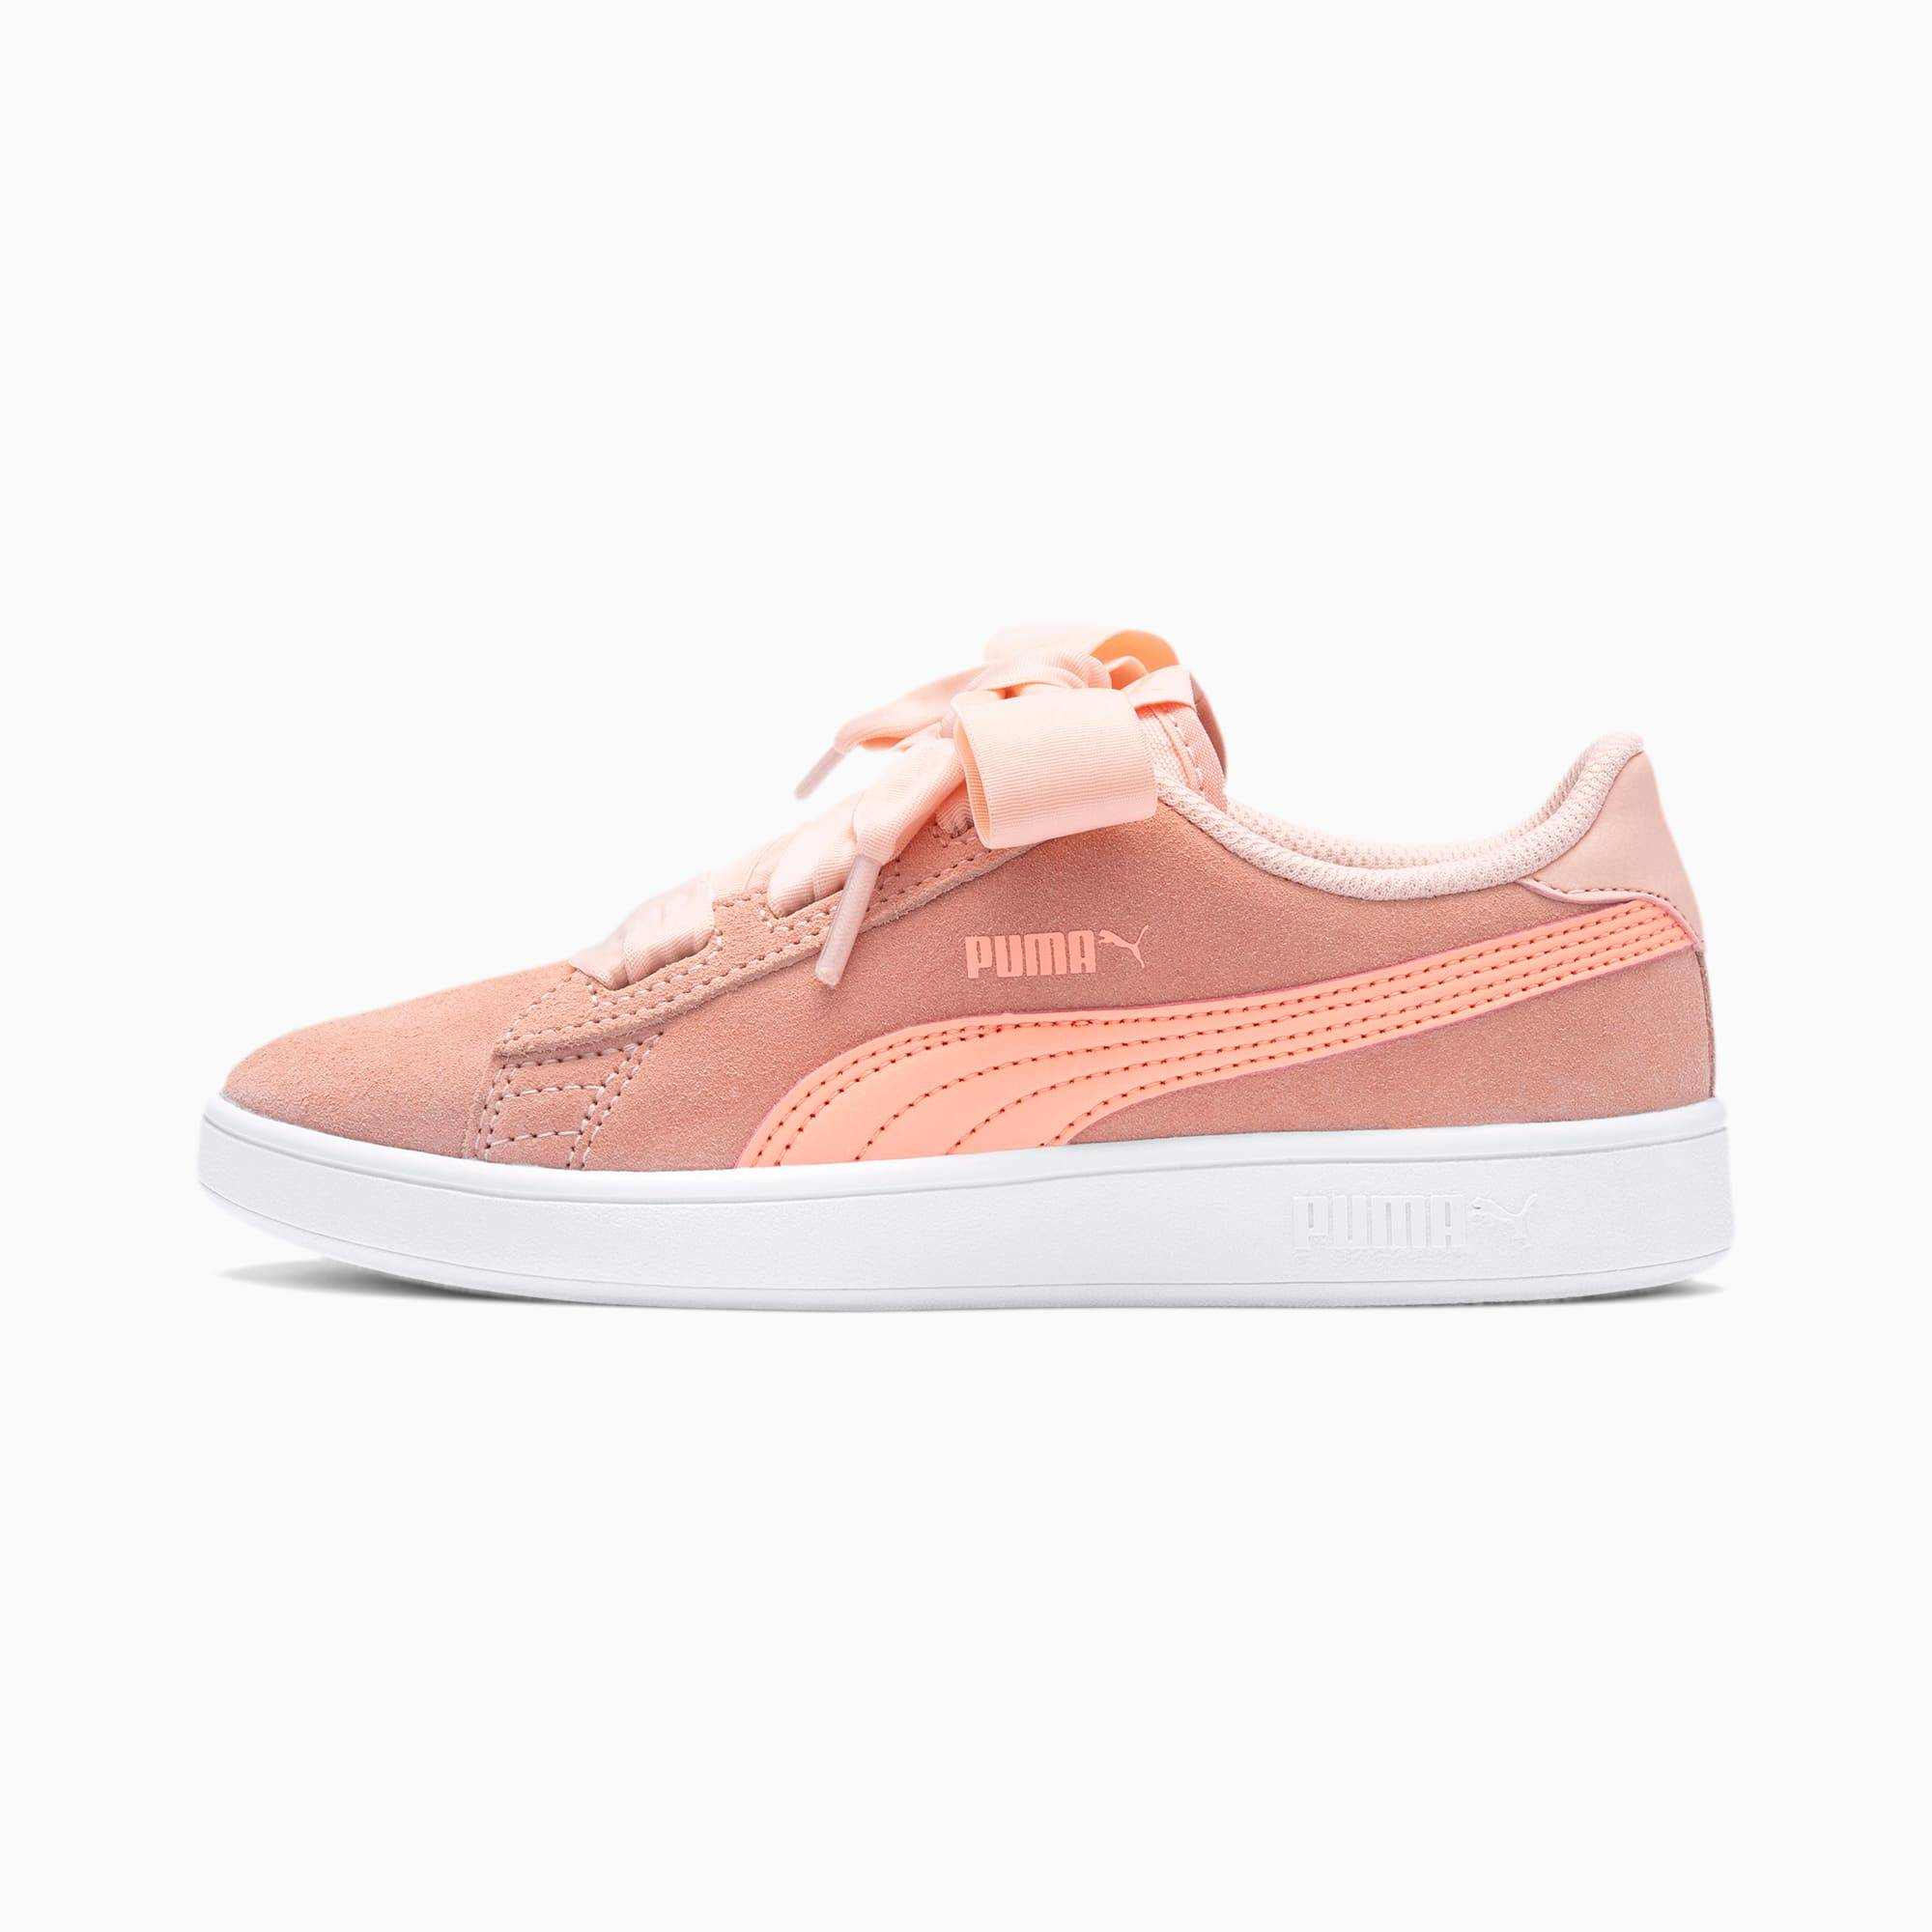 PUMA Chaussure Basket Smash v2 Ribbon AC pour fille, Rose/Blanc, Taille 30, Chaussures